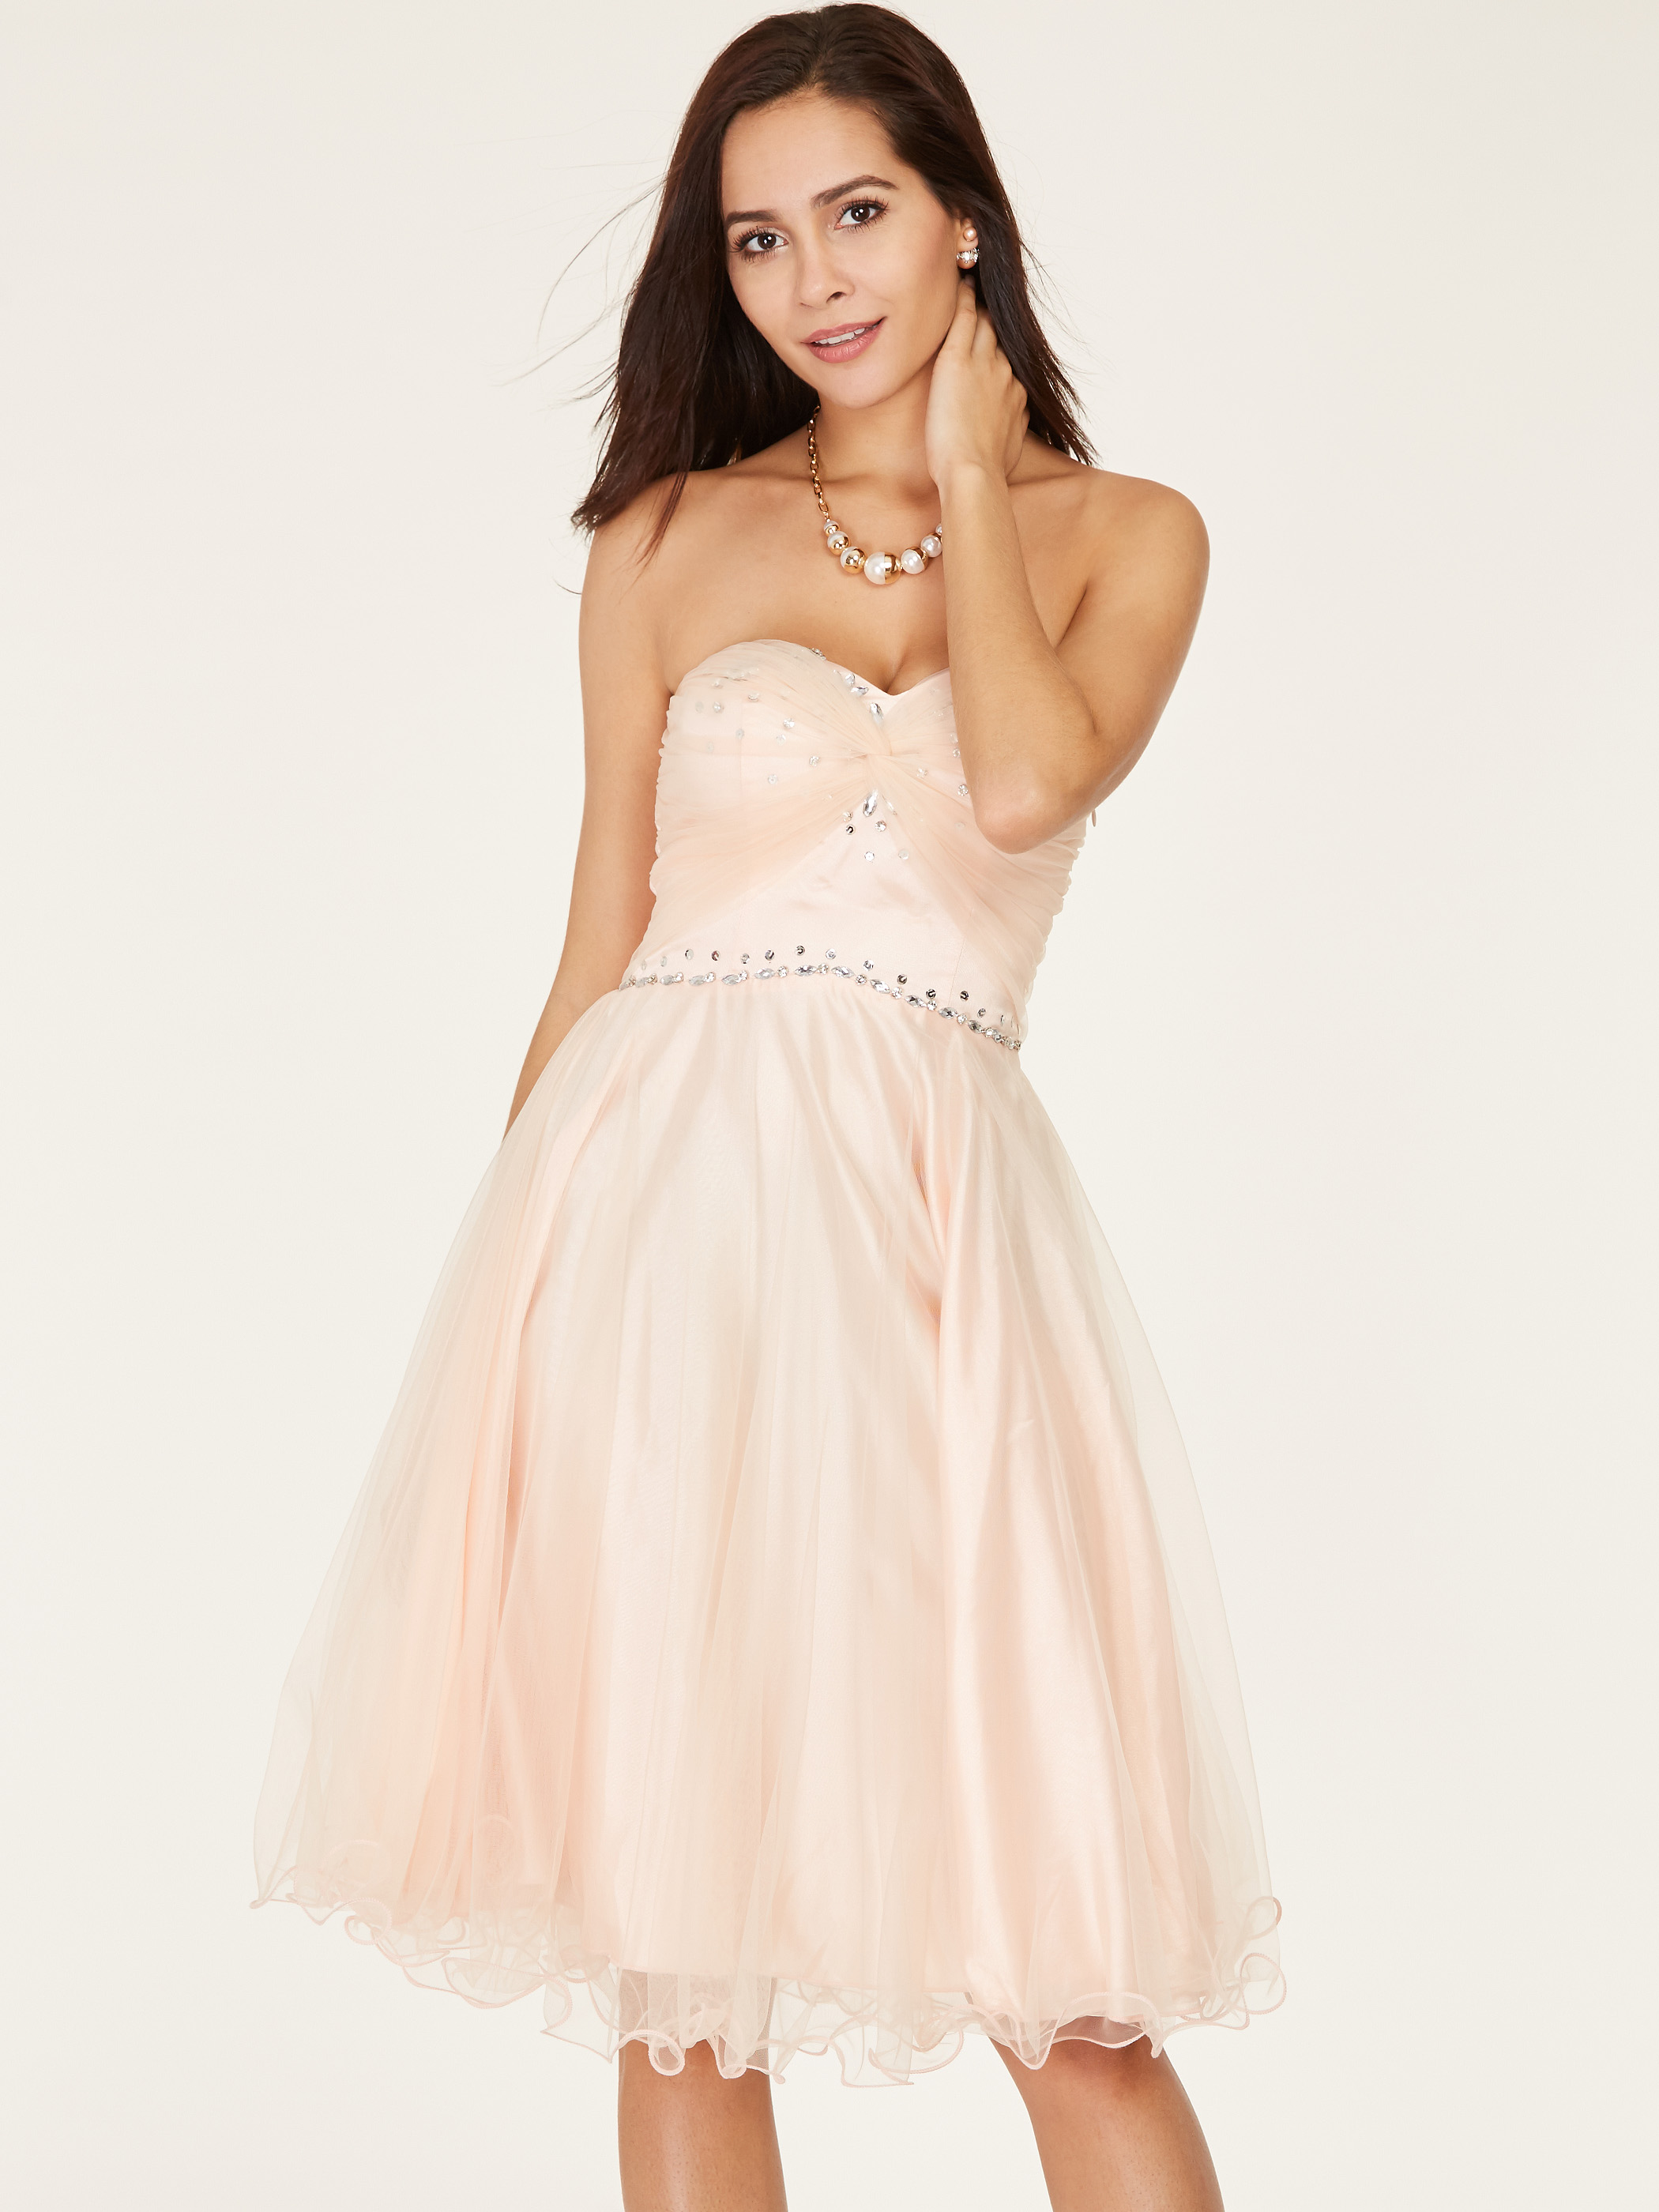 Dressv Short Homecoming Dress Pink Sweetheart Sleeveless Above Knee A Line Gown Lady Beaded Lace Up Cocktail Homecoming Dresses